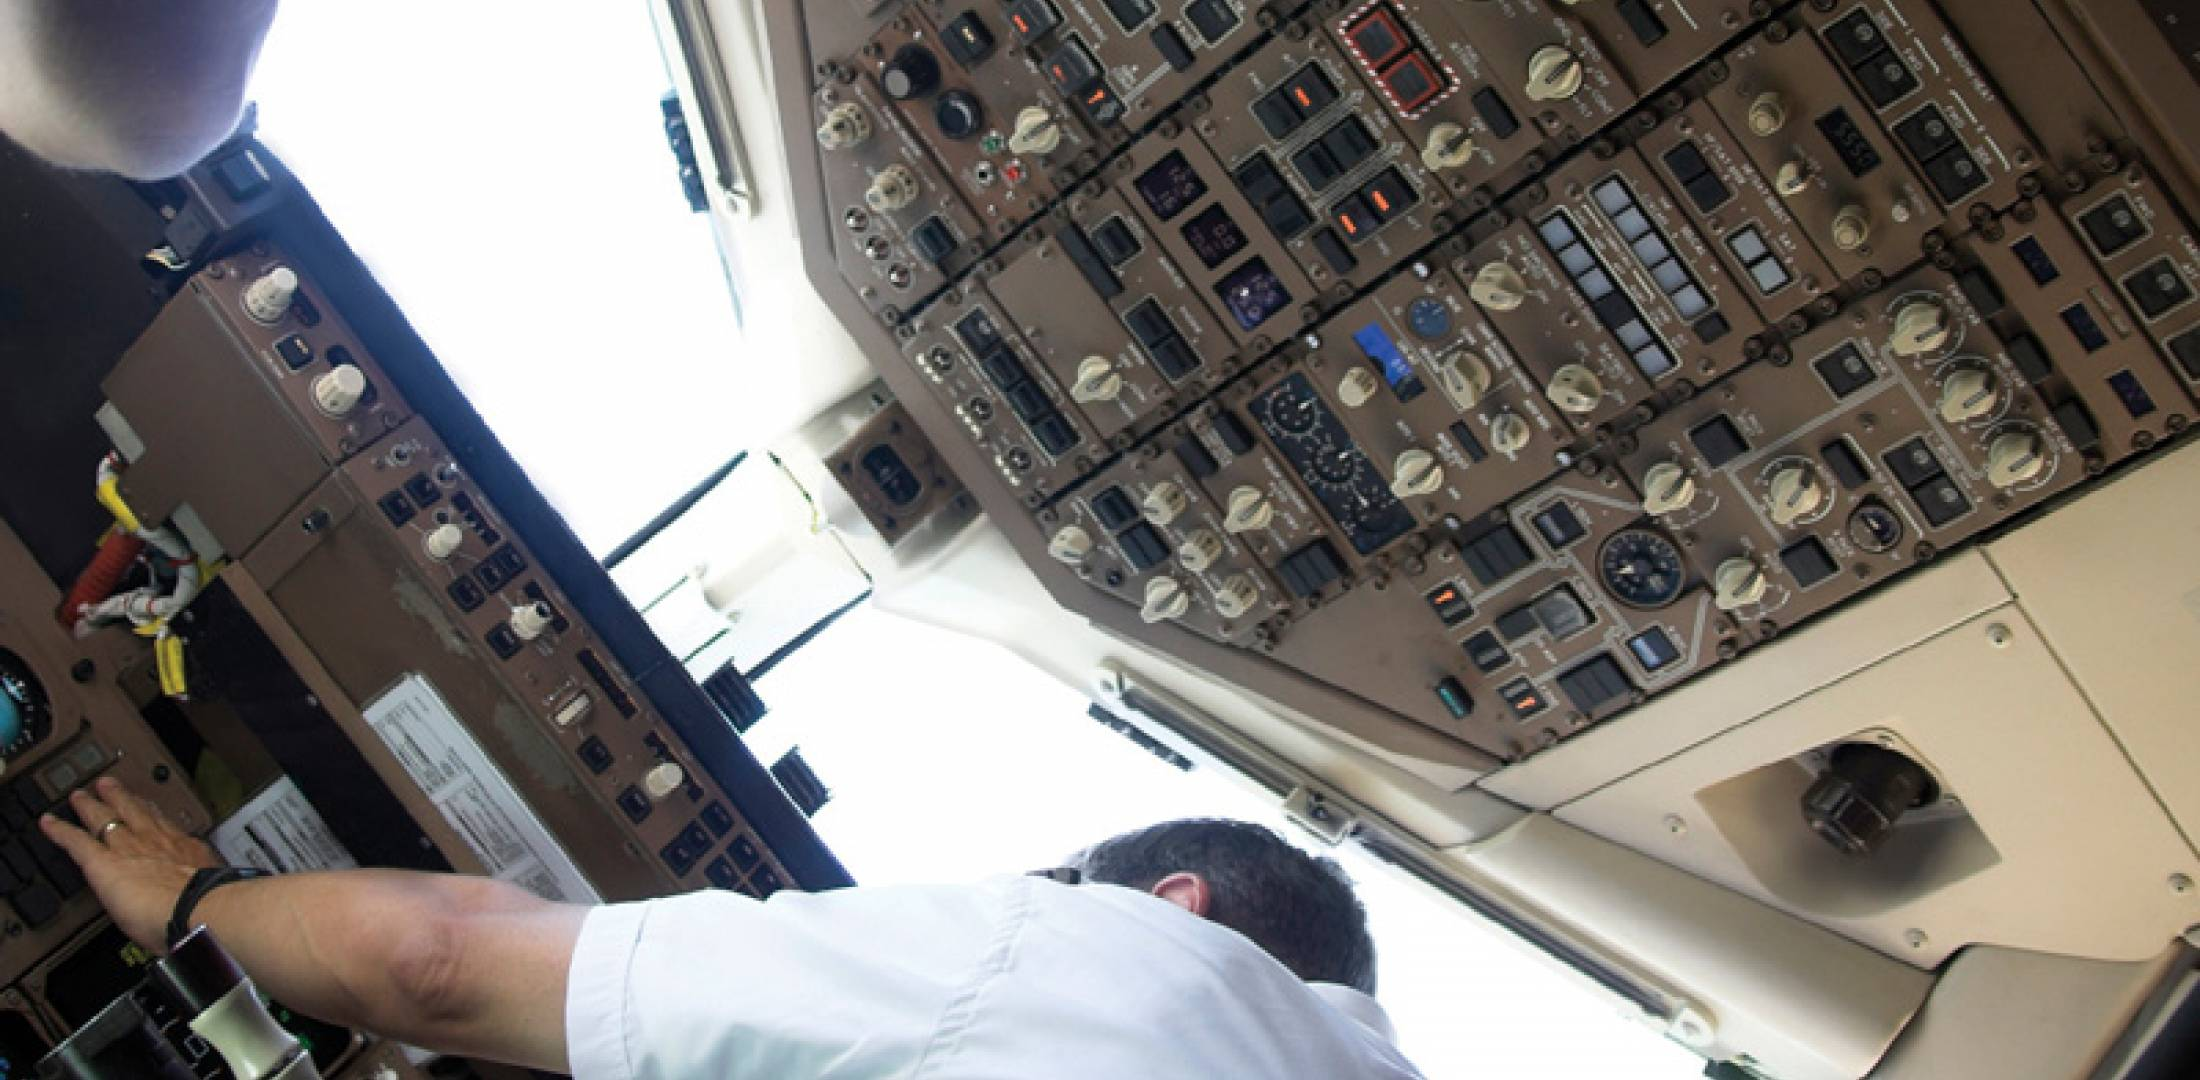 The FAA is to issue a new rule governing stall training for airline pilots based on industry input recommending improved approaches for dealing with loss of control in flight, said to be the leading cause of aircraft fatalities.